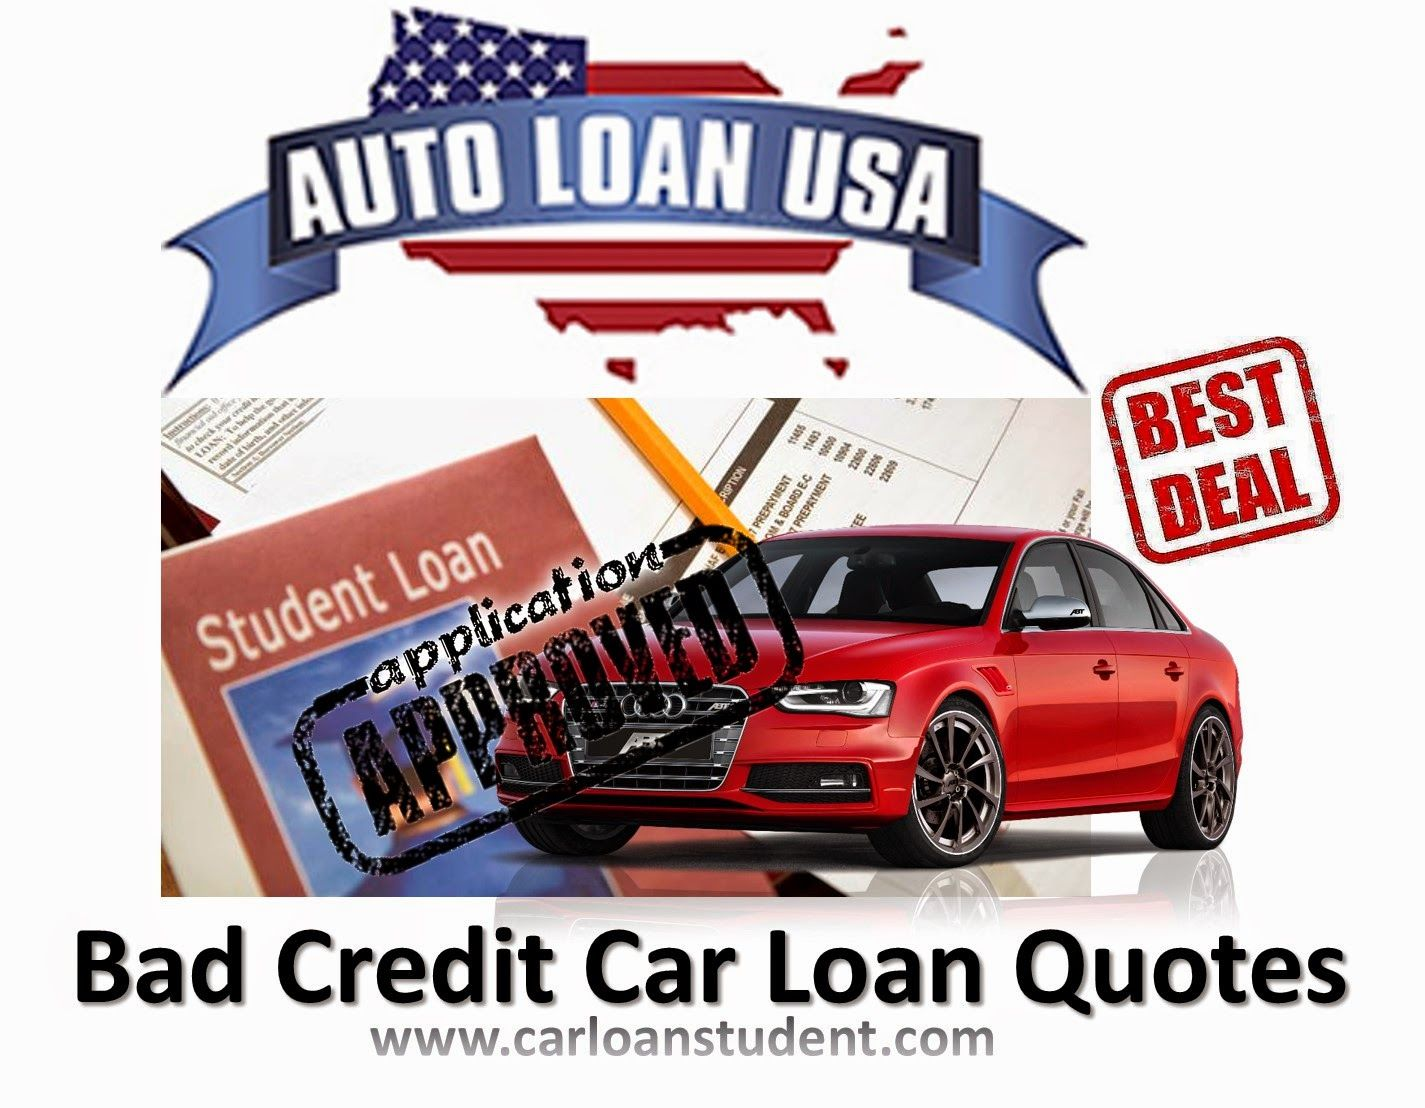 Bad credit car loans quotes online for poor credit history